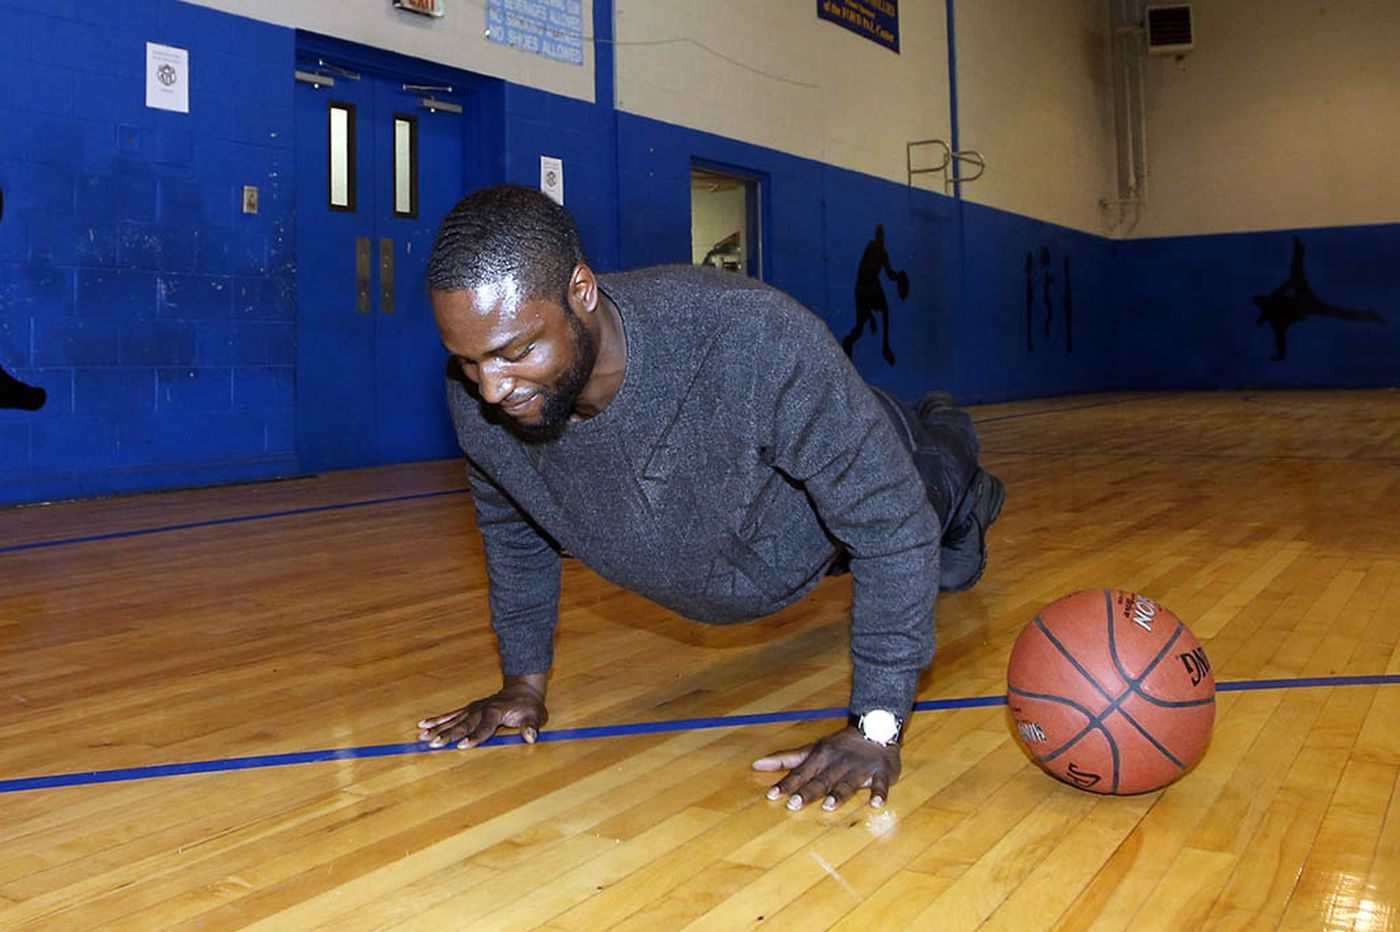 With help from the D.A., warring crews in South Philly break for basketball